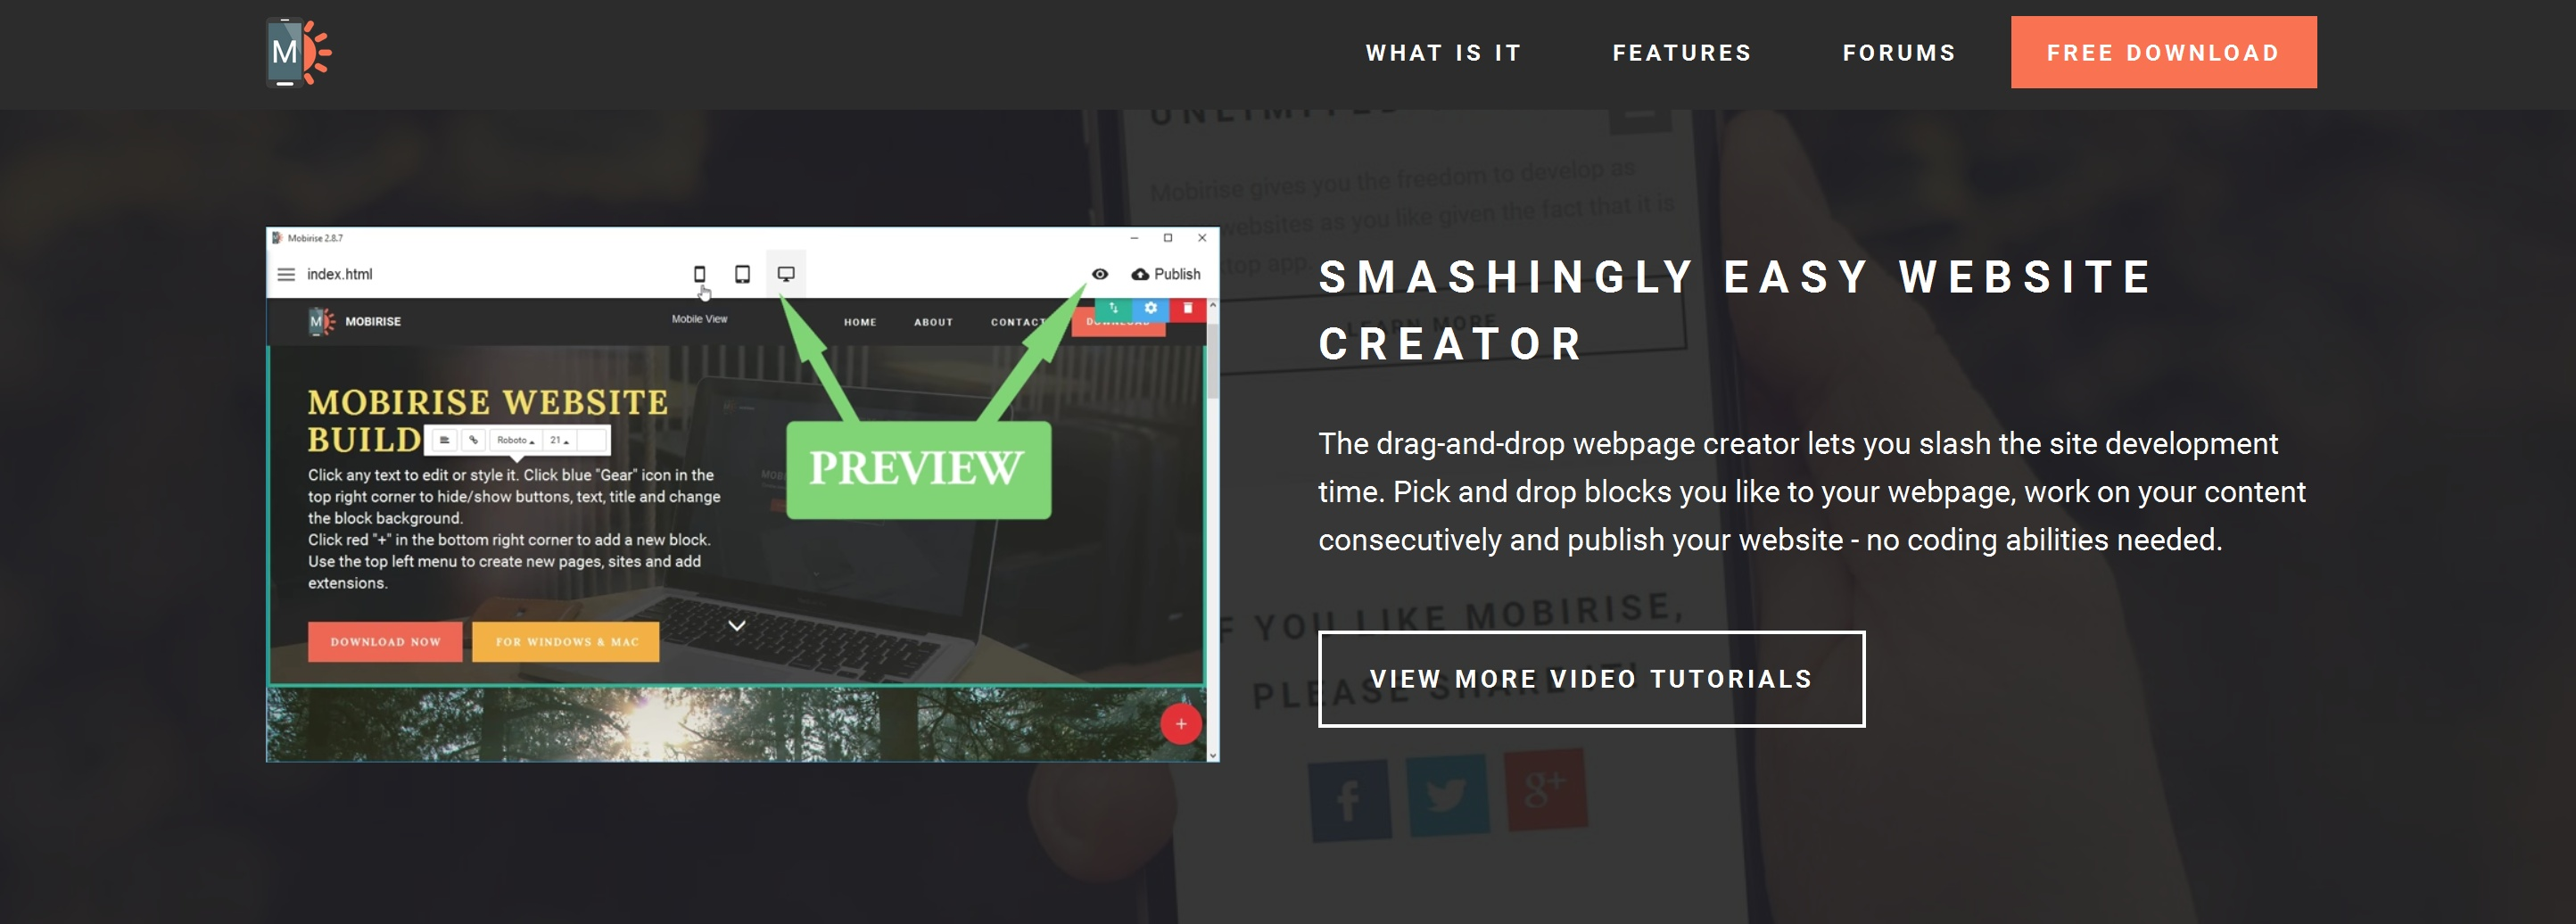 Fast and Simple Website Creator Software